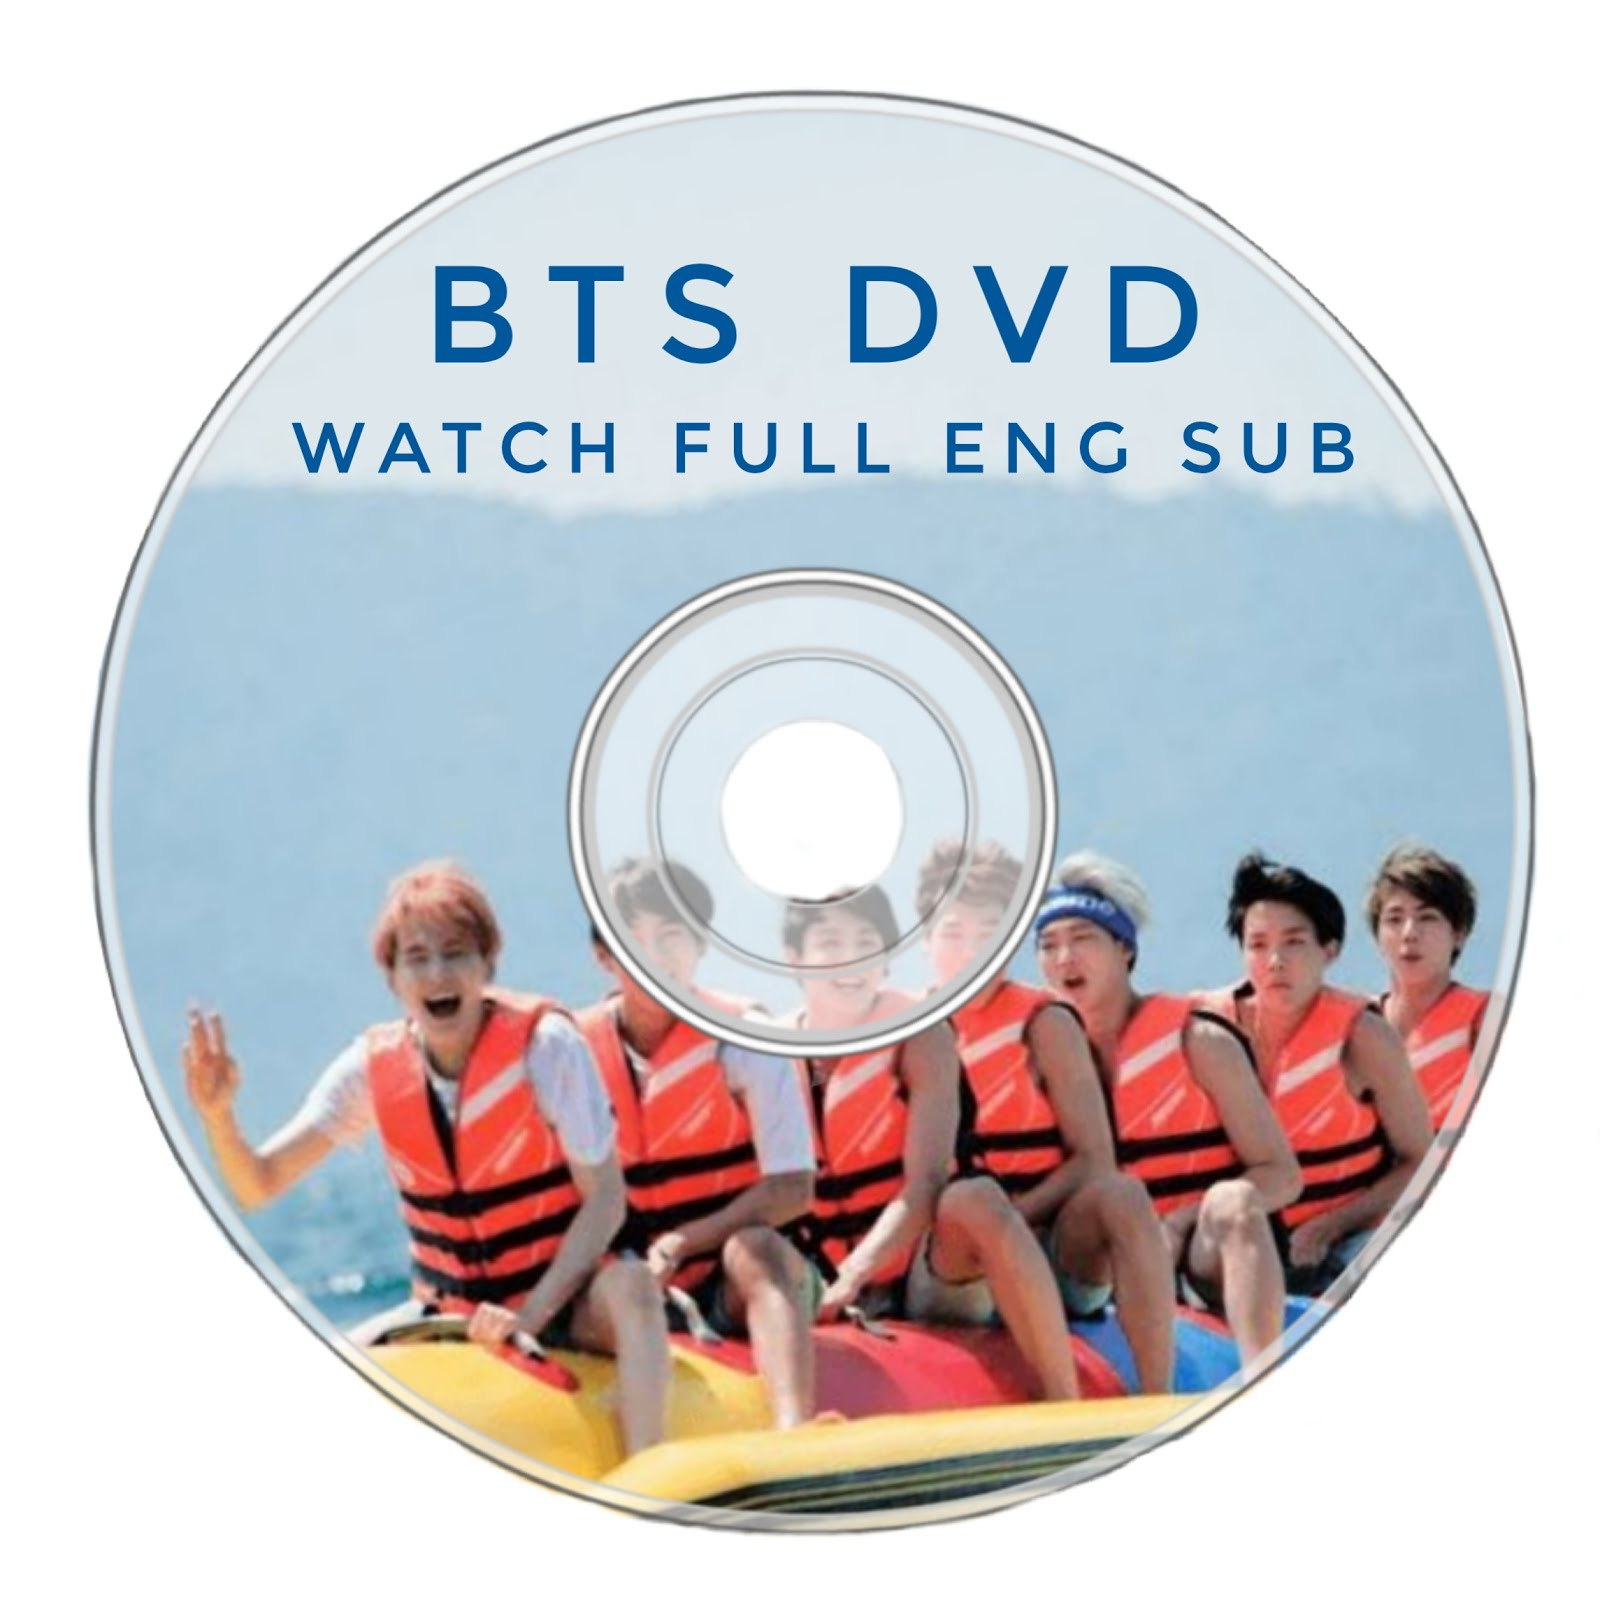 Watch BTS DVD Full Eng Sub Free